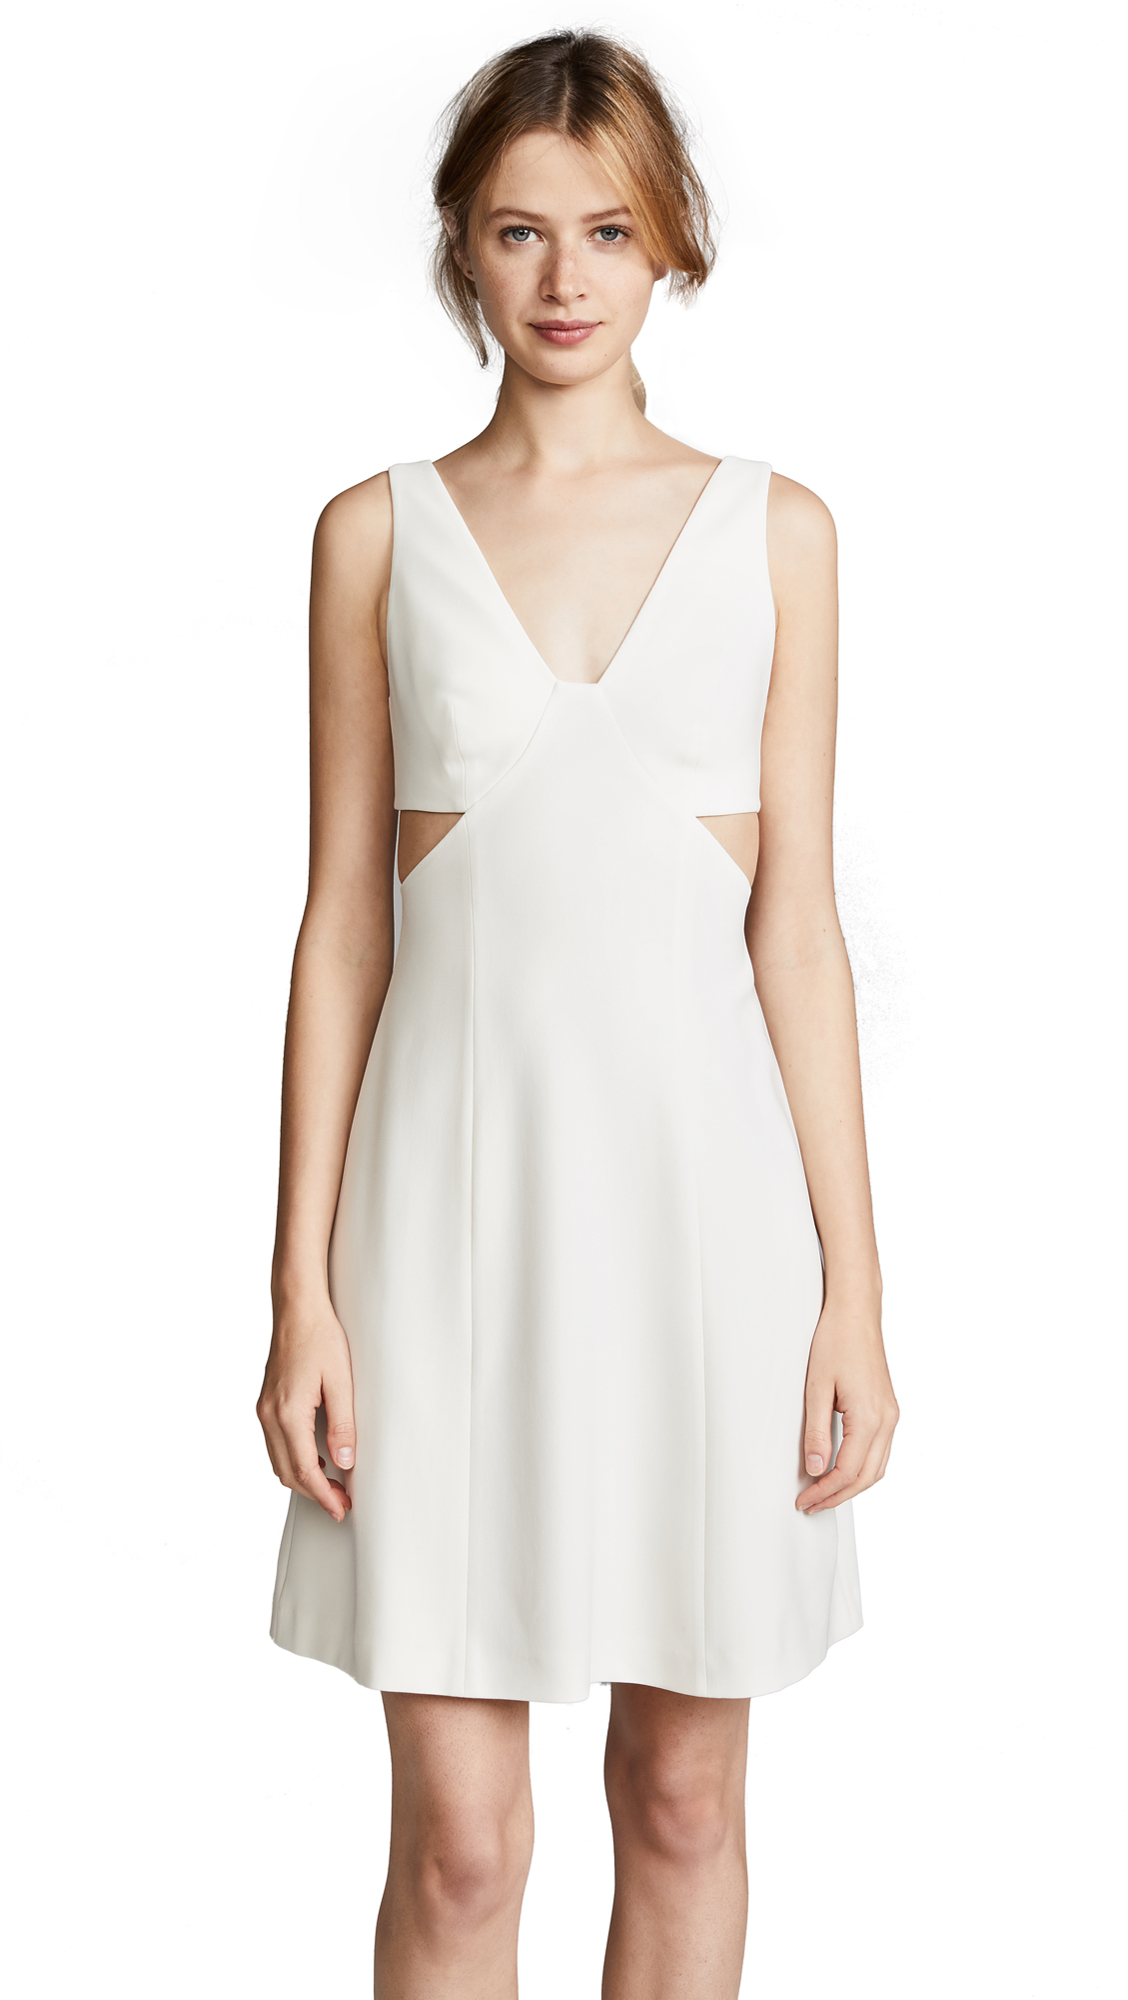 Theory Cutout Dress - Ivory